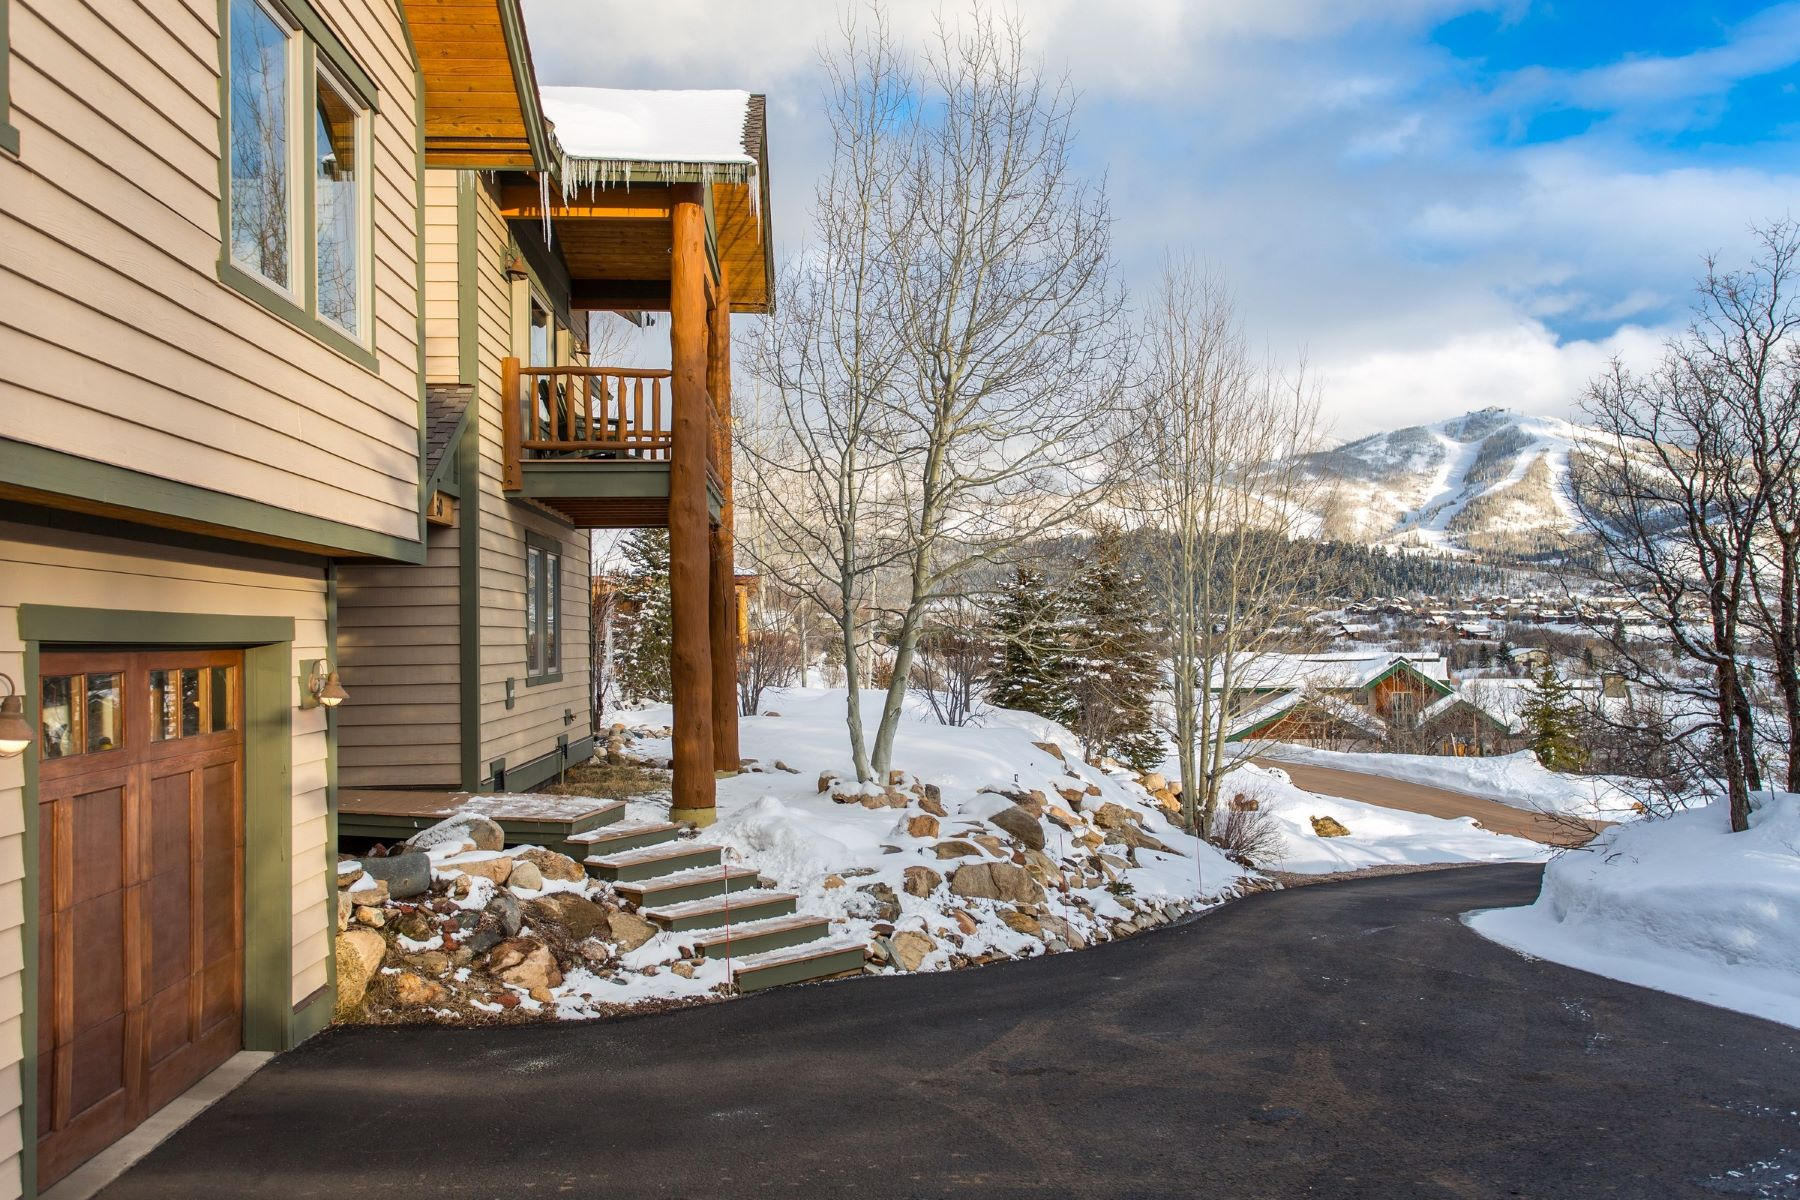 Single Family Home for Sale at Stunning Hillside Home 260 Storm Peak Ct Steamboat Springs, Colorado 80487 United States